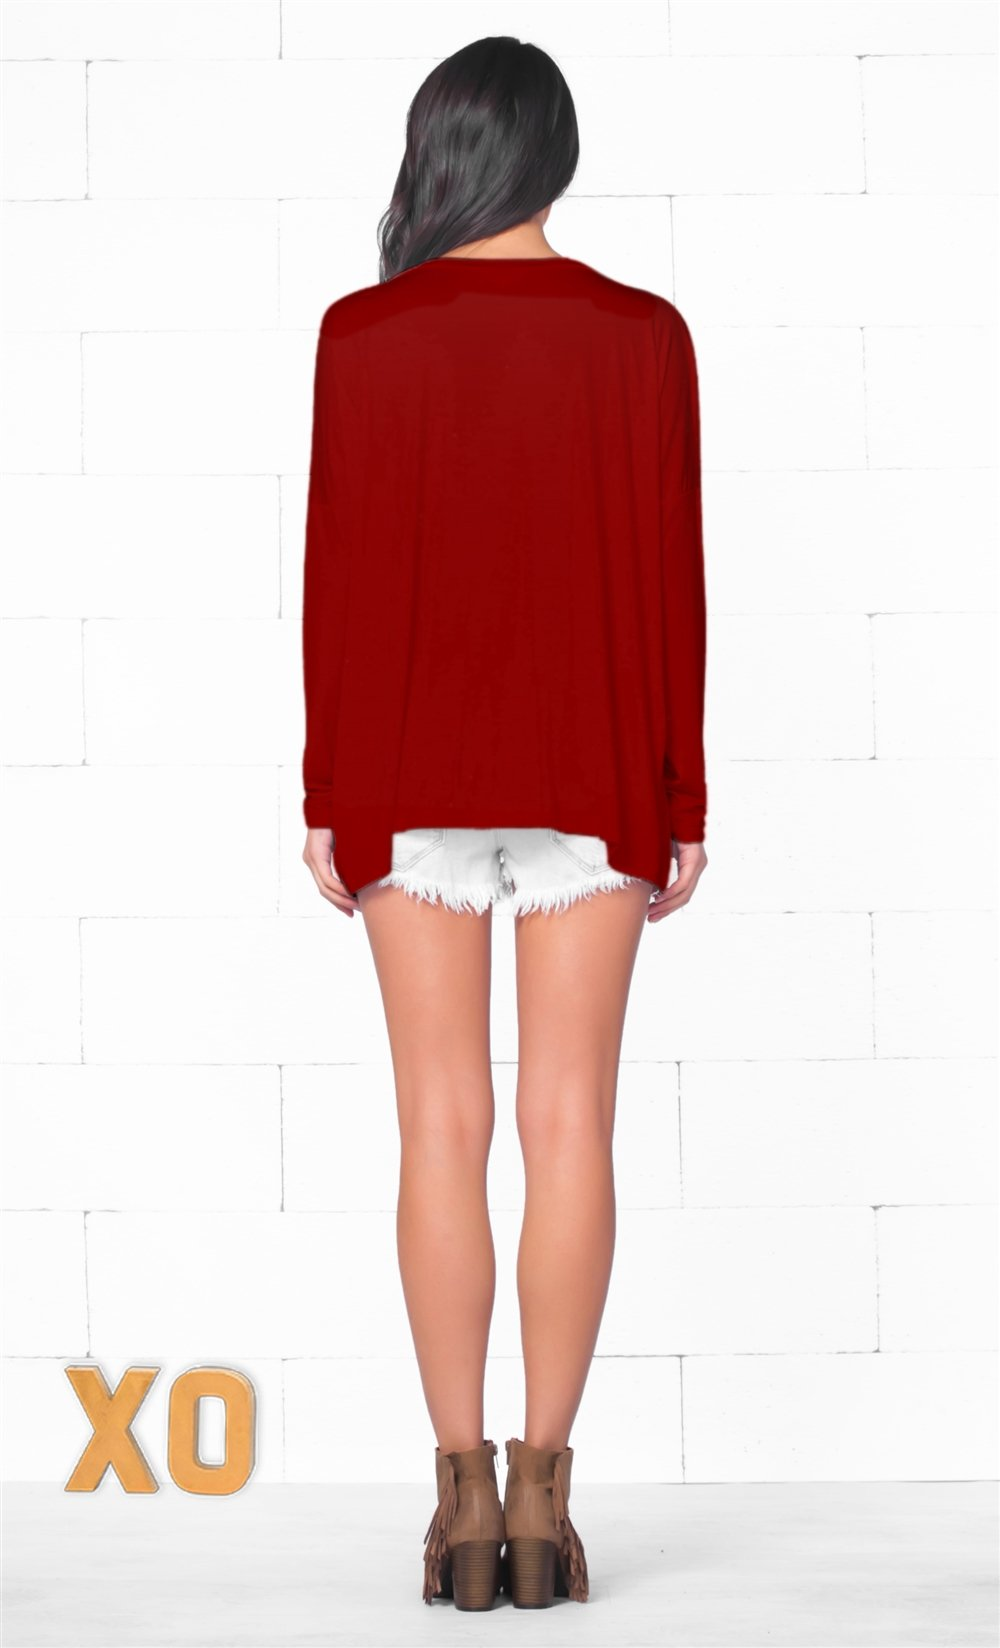 Piko 1988 Christmas Holiday Bright Red Long Dolman Sleeve V Neck Piko Bamboo Basic Loose Tunic Tee Top - Limited Edition